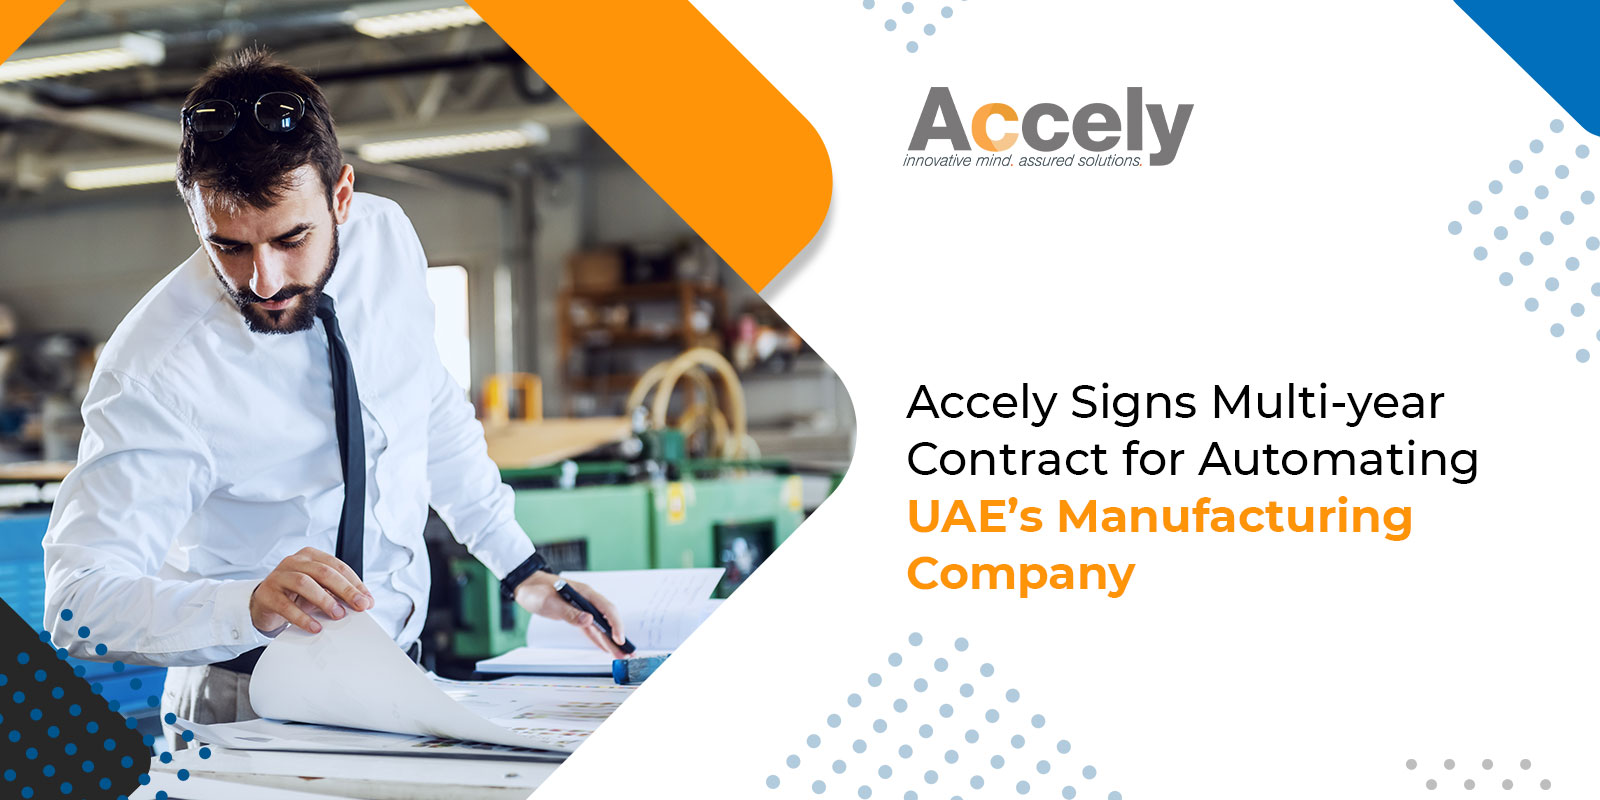 Accely Signs Multi-year Contract for Automating UAE's Manufacturing Company